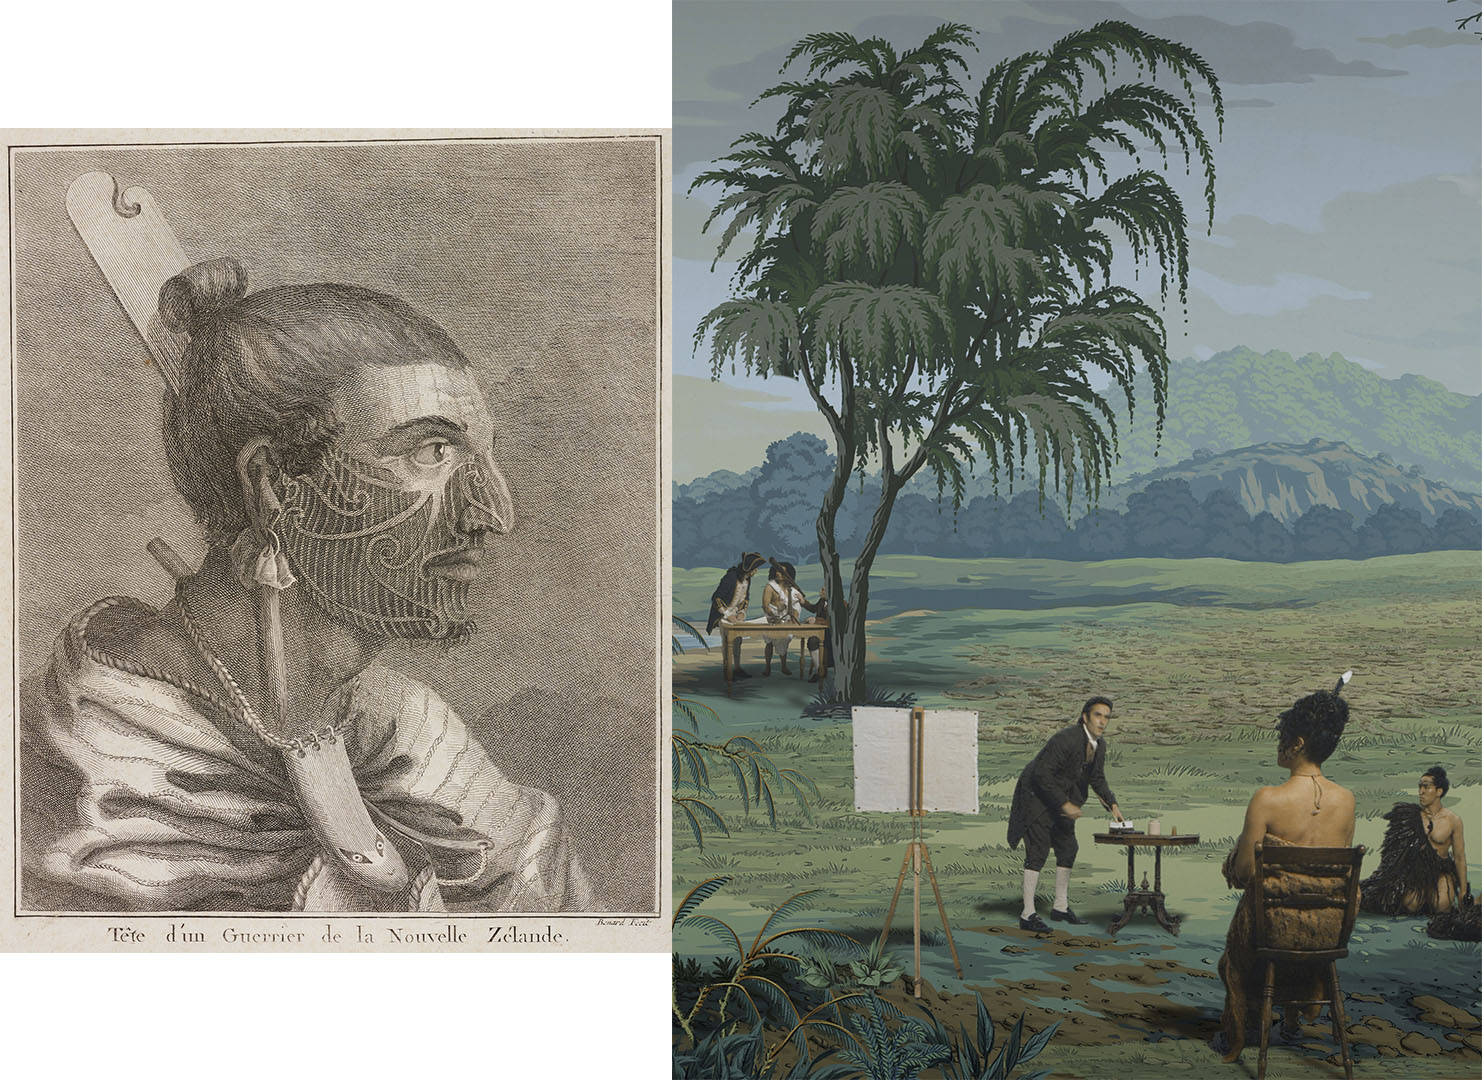 On the left is an illustration a man showing Tā moko, on the right in a still from in Pursuit of Venus [infected] shows a man posing for a portrait